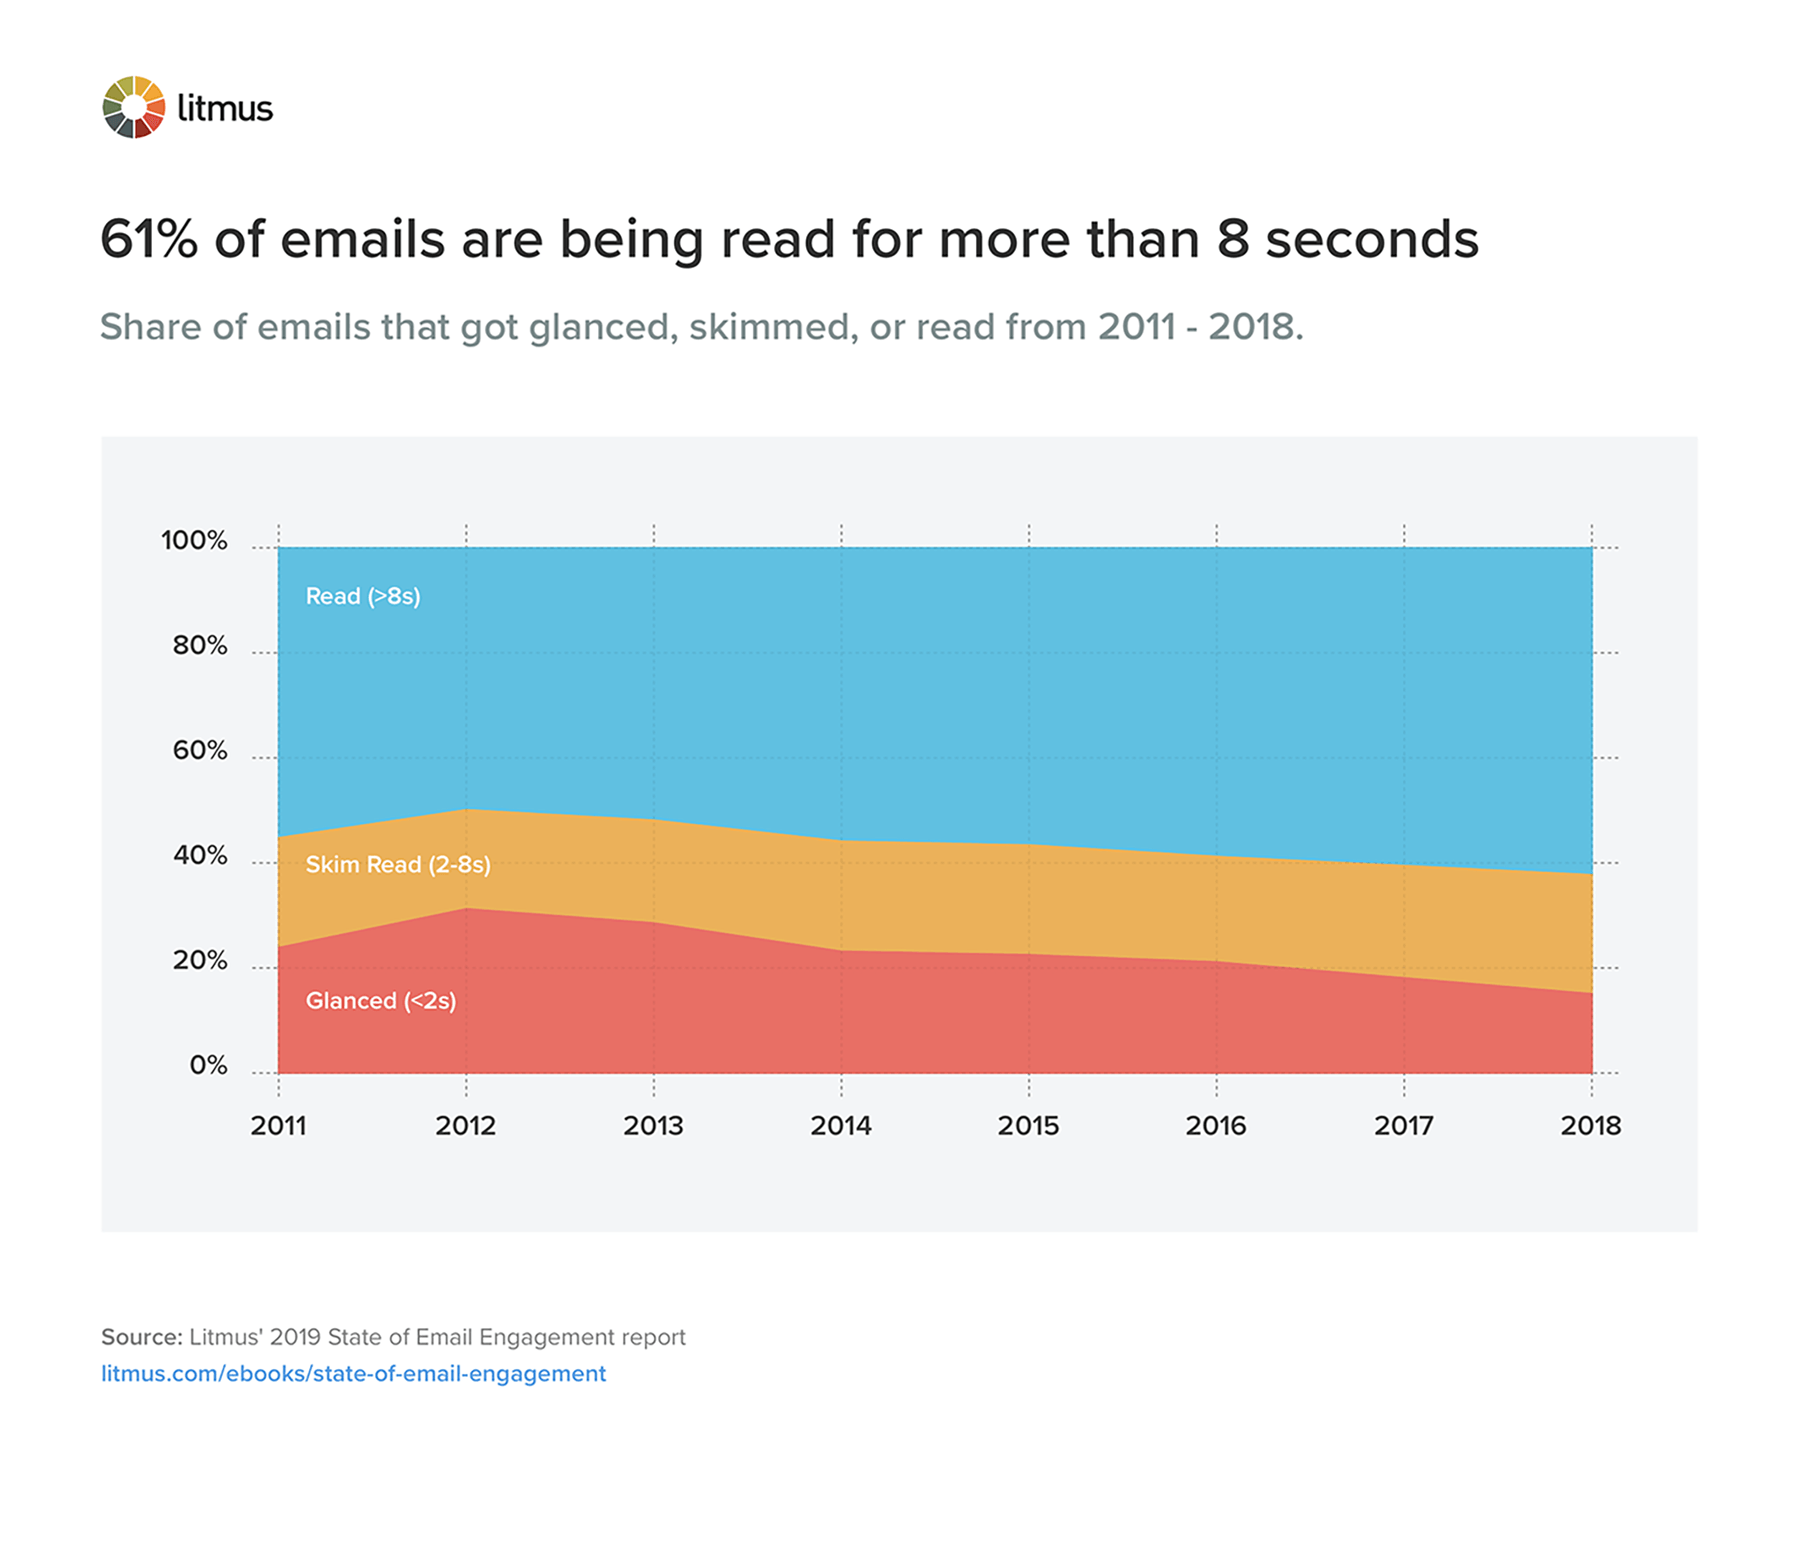 61 percent of emails are being read for more than 8 seconds